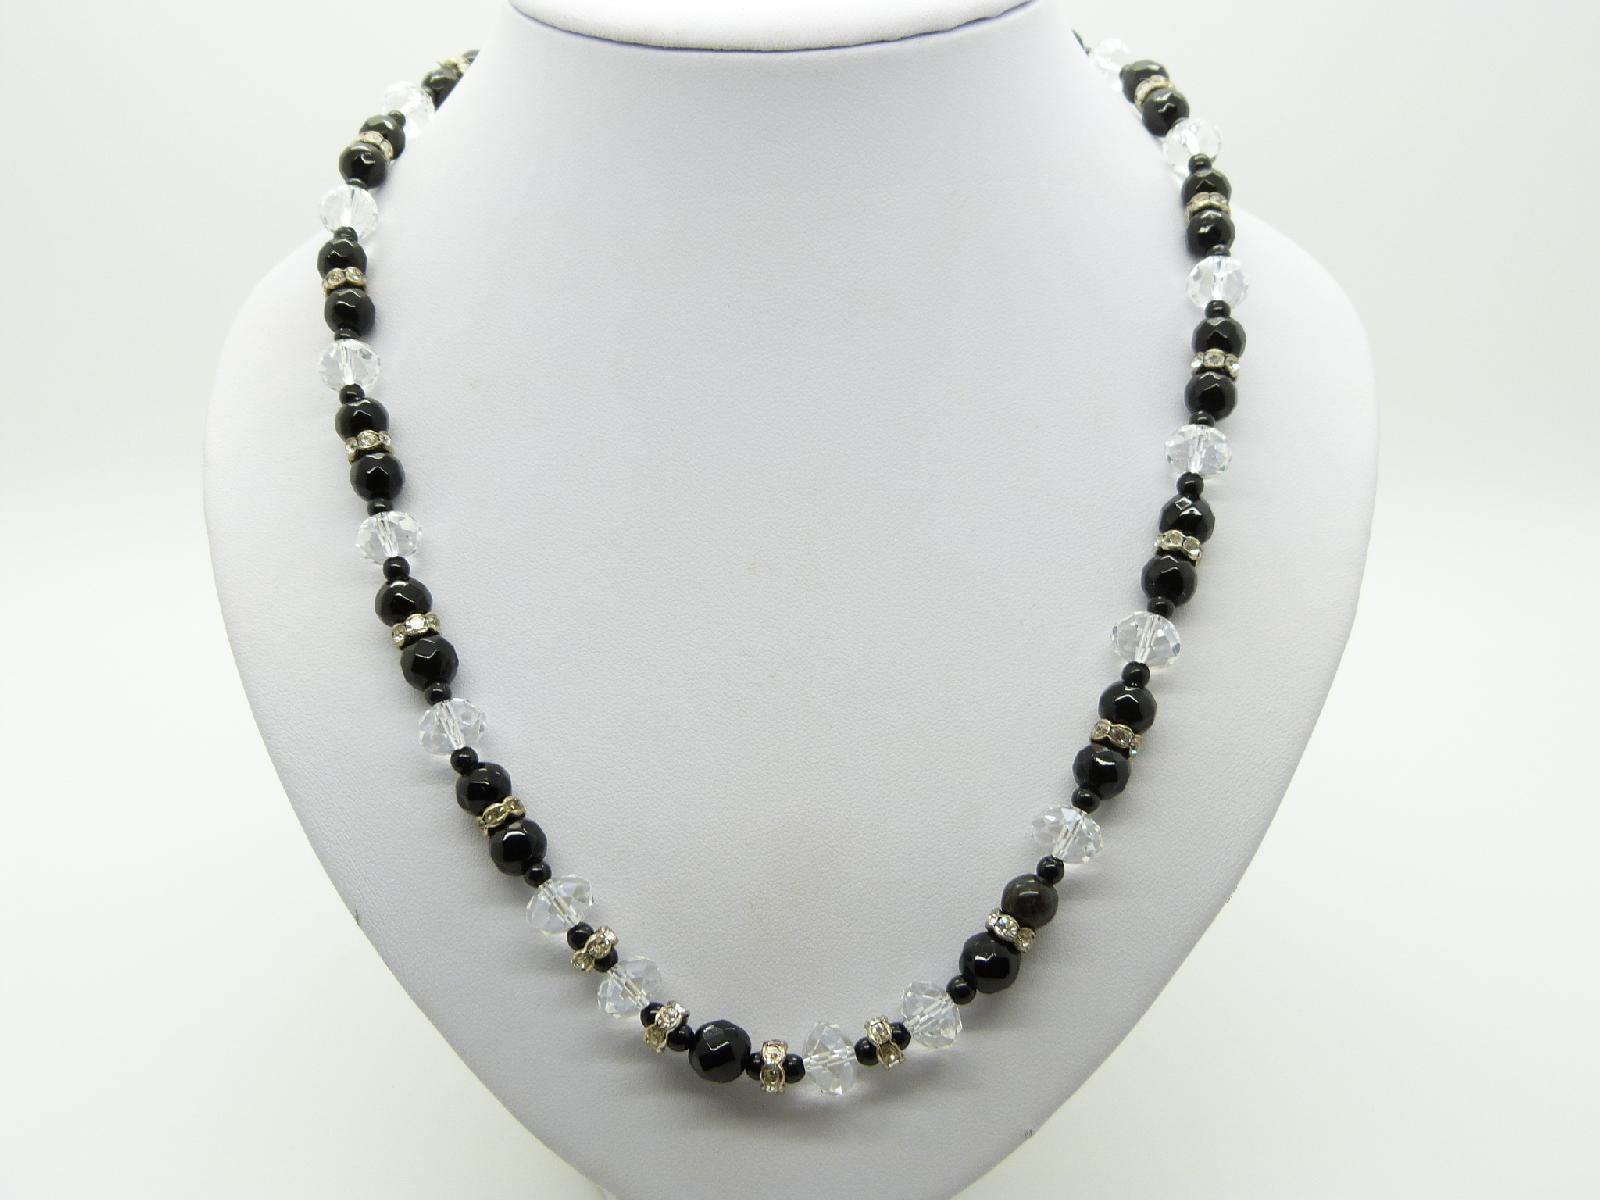 £20.00 - Vintage 50s Black and White Crystal Bead Necklace with Diamantes 58cms